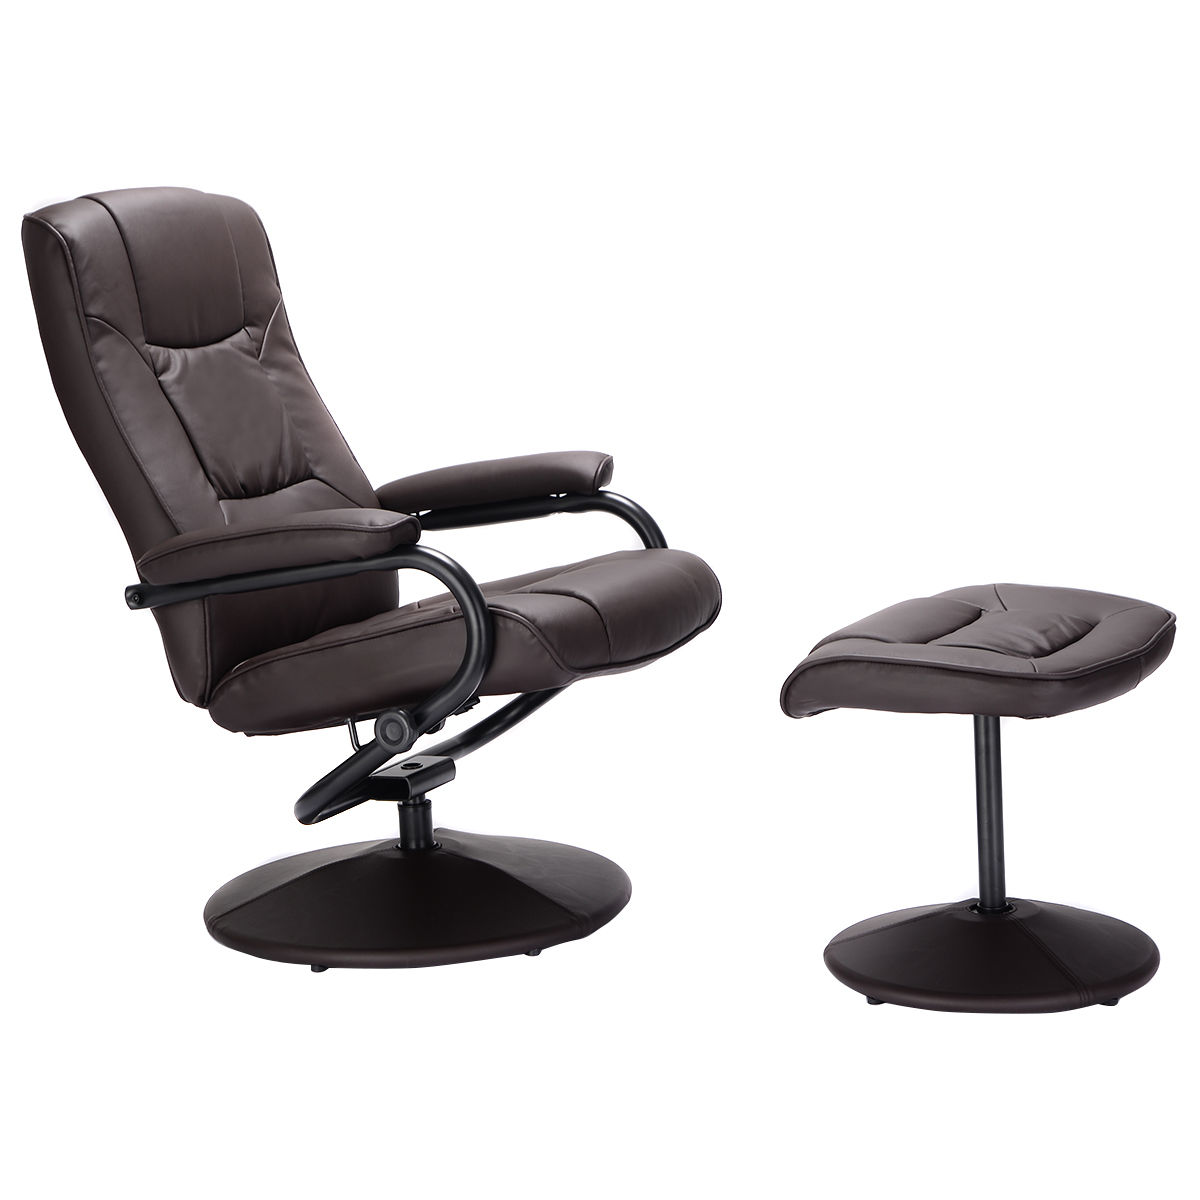 leather swivel recliner chair and stool ikea lounge chairs ghp brown pu armchair with footrest